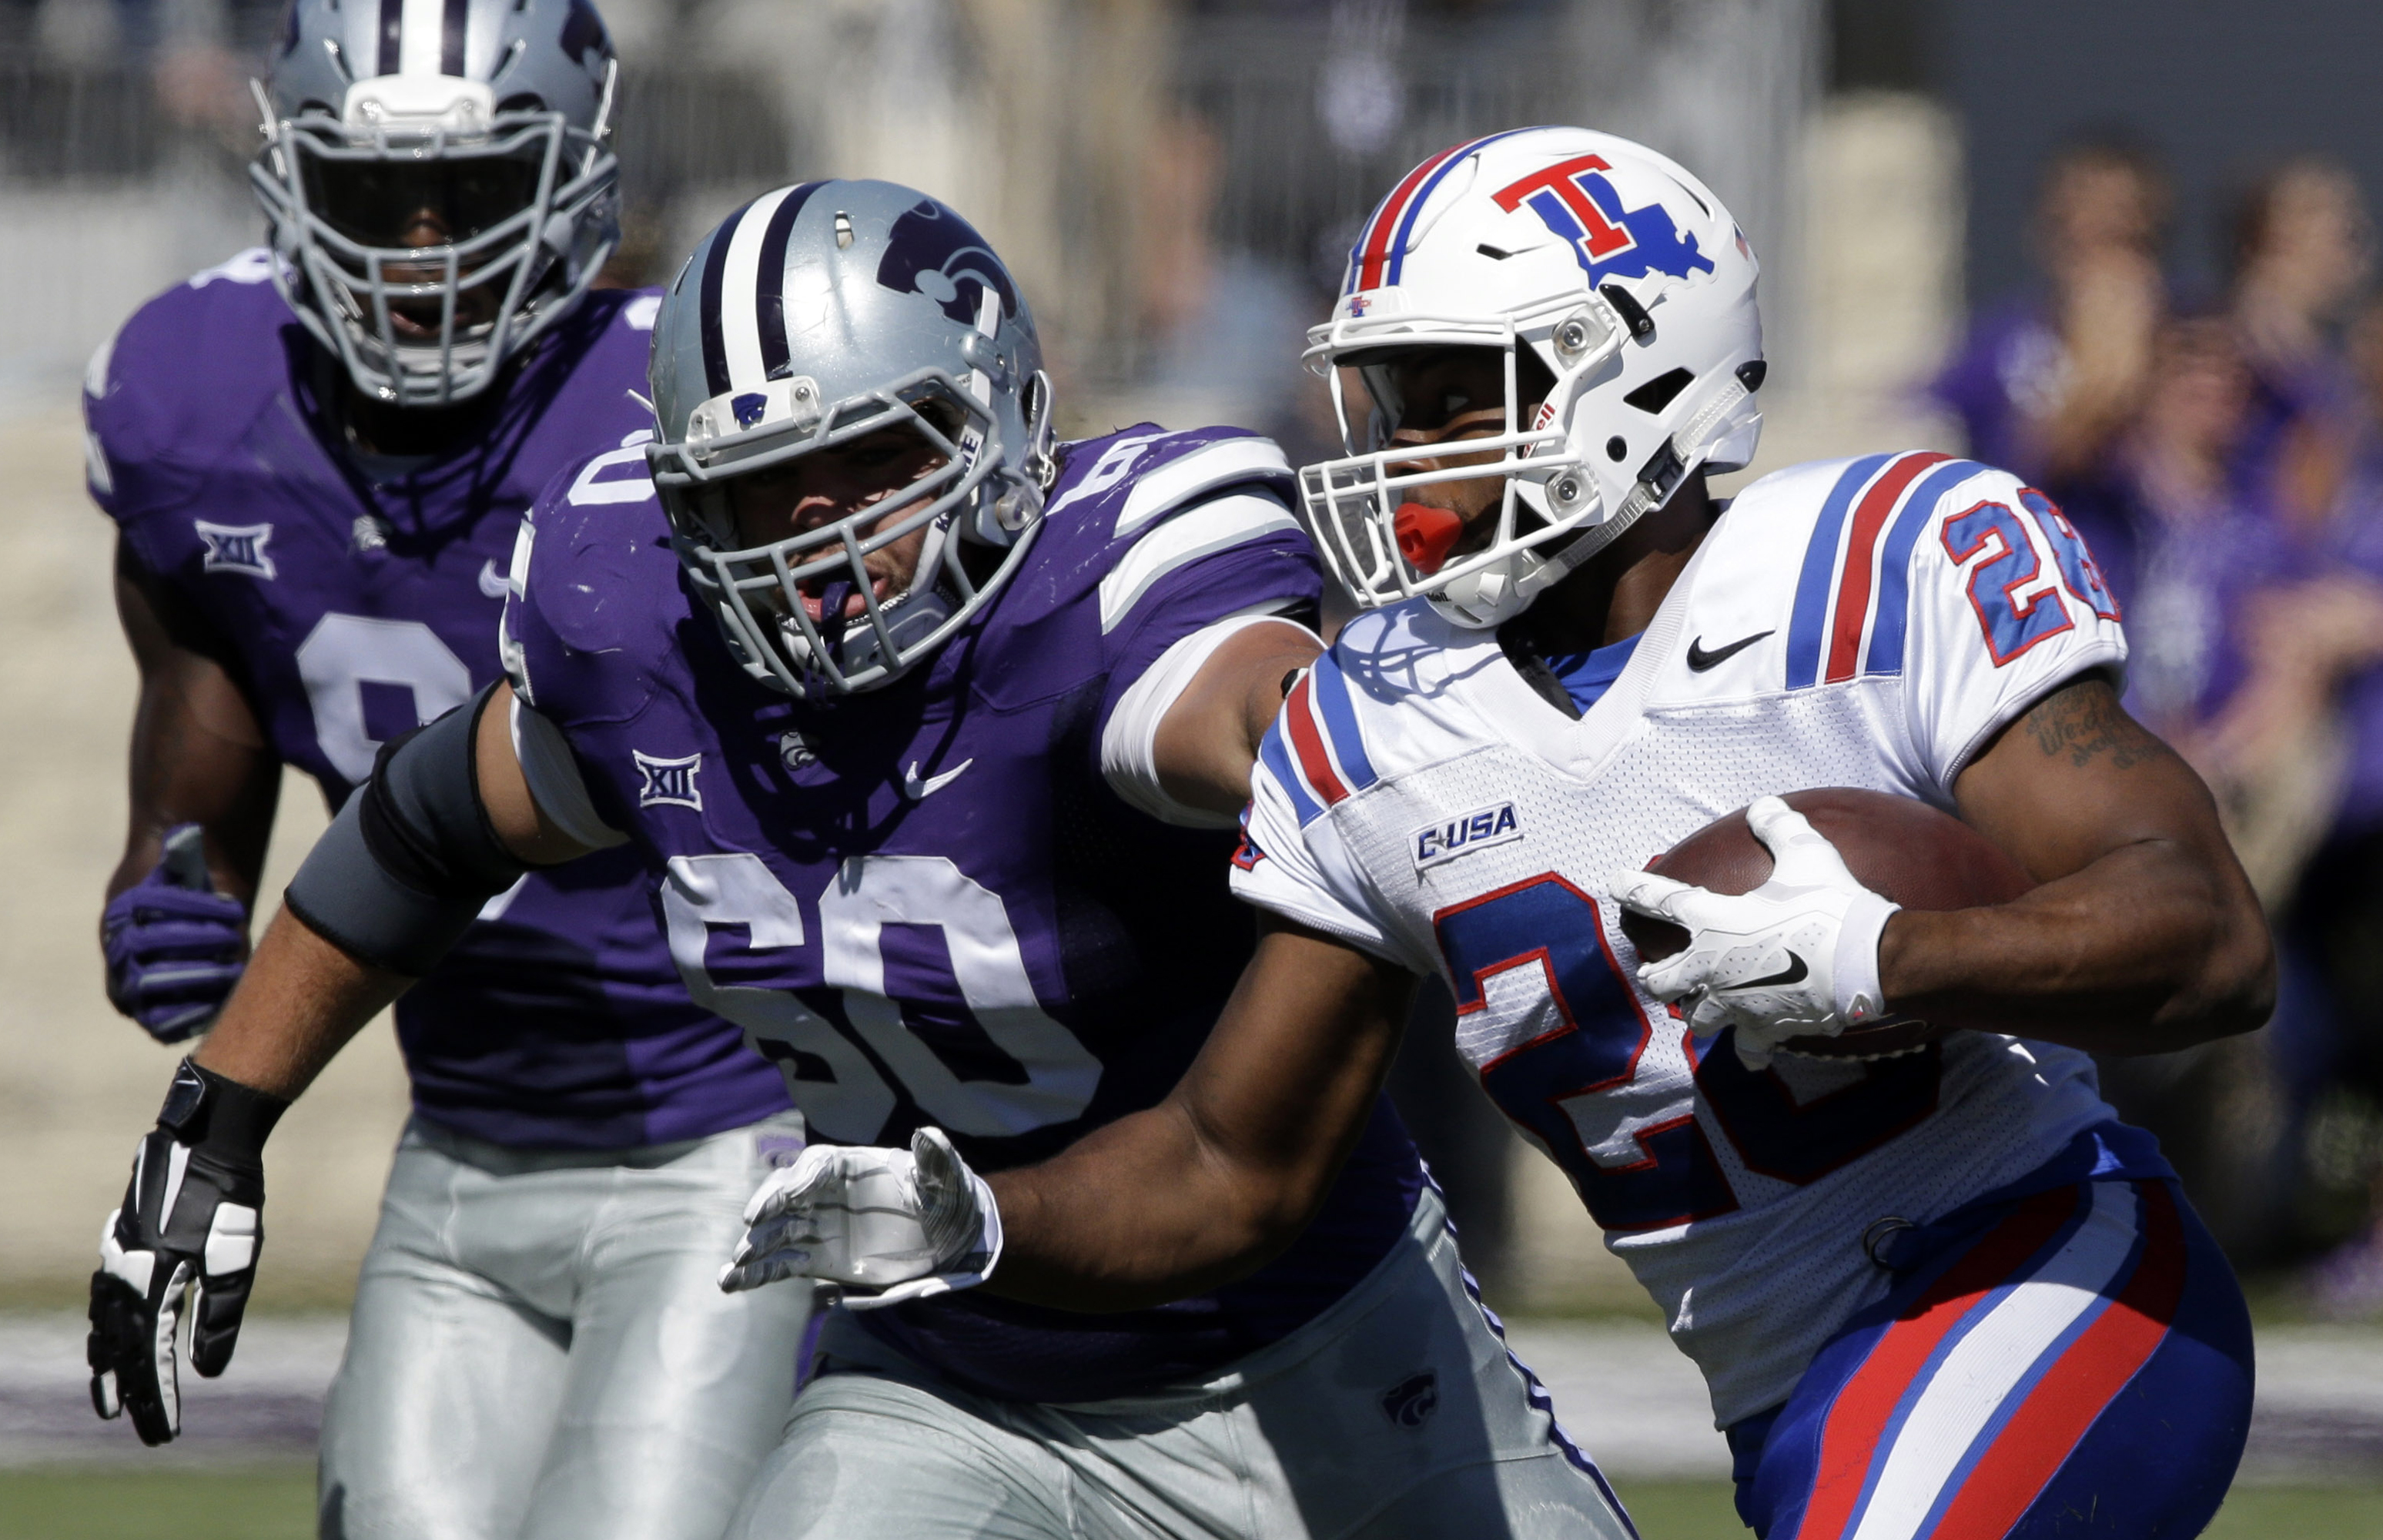 FILE - In this Sept. 19, 2015, file photo, Louisiana Tech running back Kenneth Dixon (28) runs the ball against Kansas State defensive tackle Will Geary (60) during the first half of an NCAA college football game in Manhattan, Kan. With 83 career touchdow